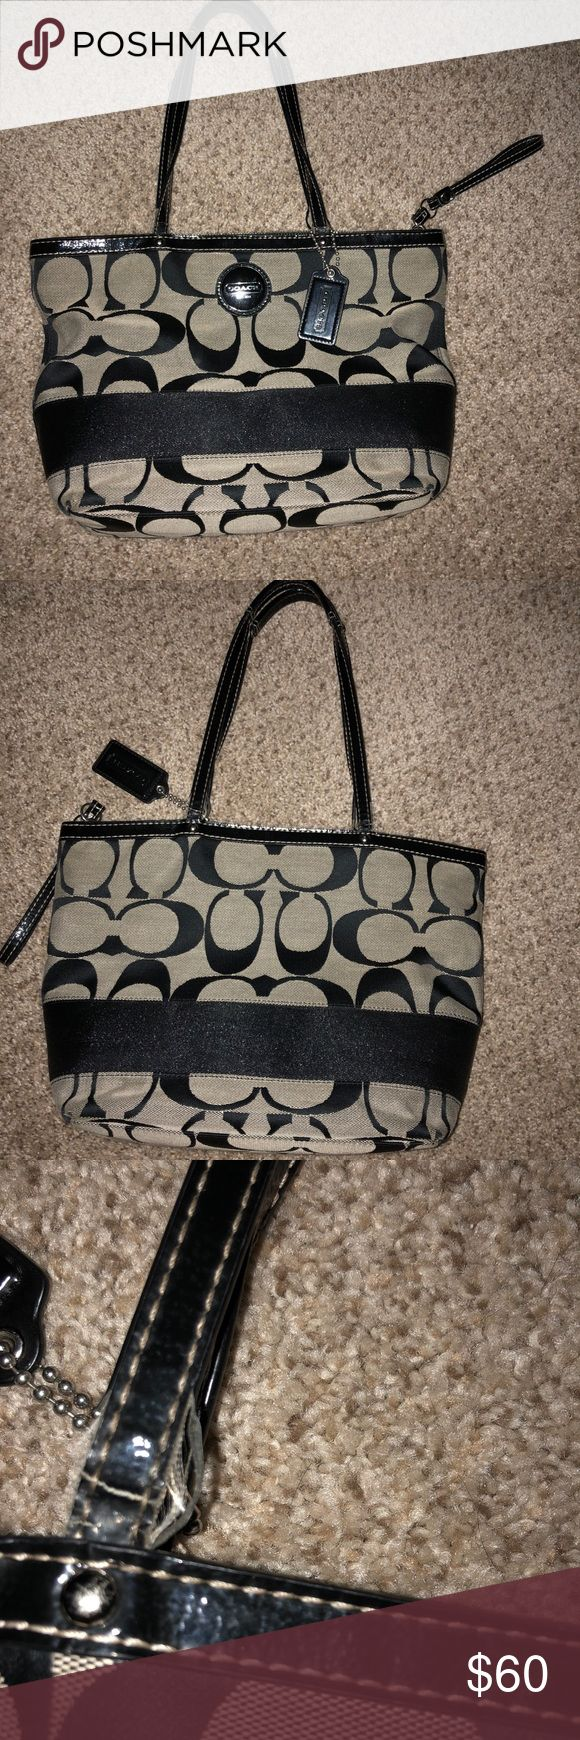 "Black Coach Purse Good condition Coach Purse. Has very little pulling on the handles (the strings) and I did not see any stains. The inside is good as well. It is 9 1/2"" long at the bottom and 13"" long at the top, 3 1/3"" wide and 9"" high (plus another 9"" for the strap). I will accept reasonable offers and I will consider trading. Coach Bags Shoulder Bags"